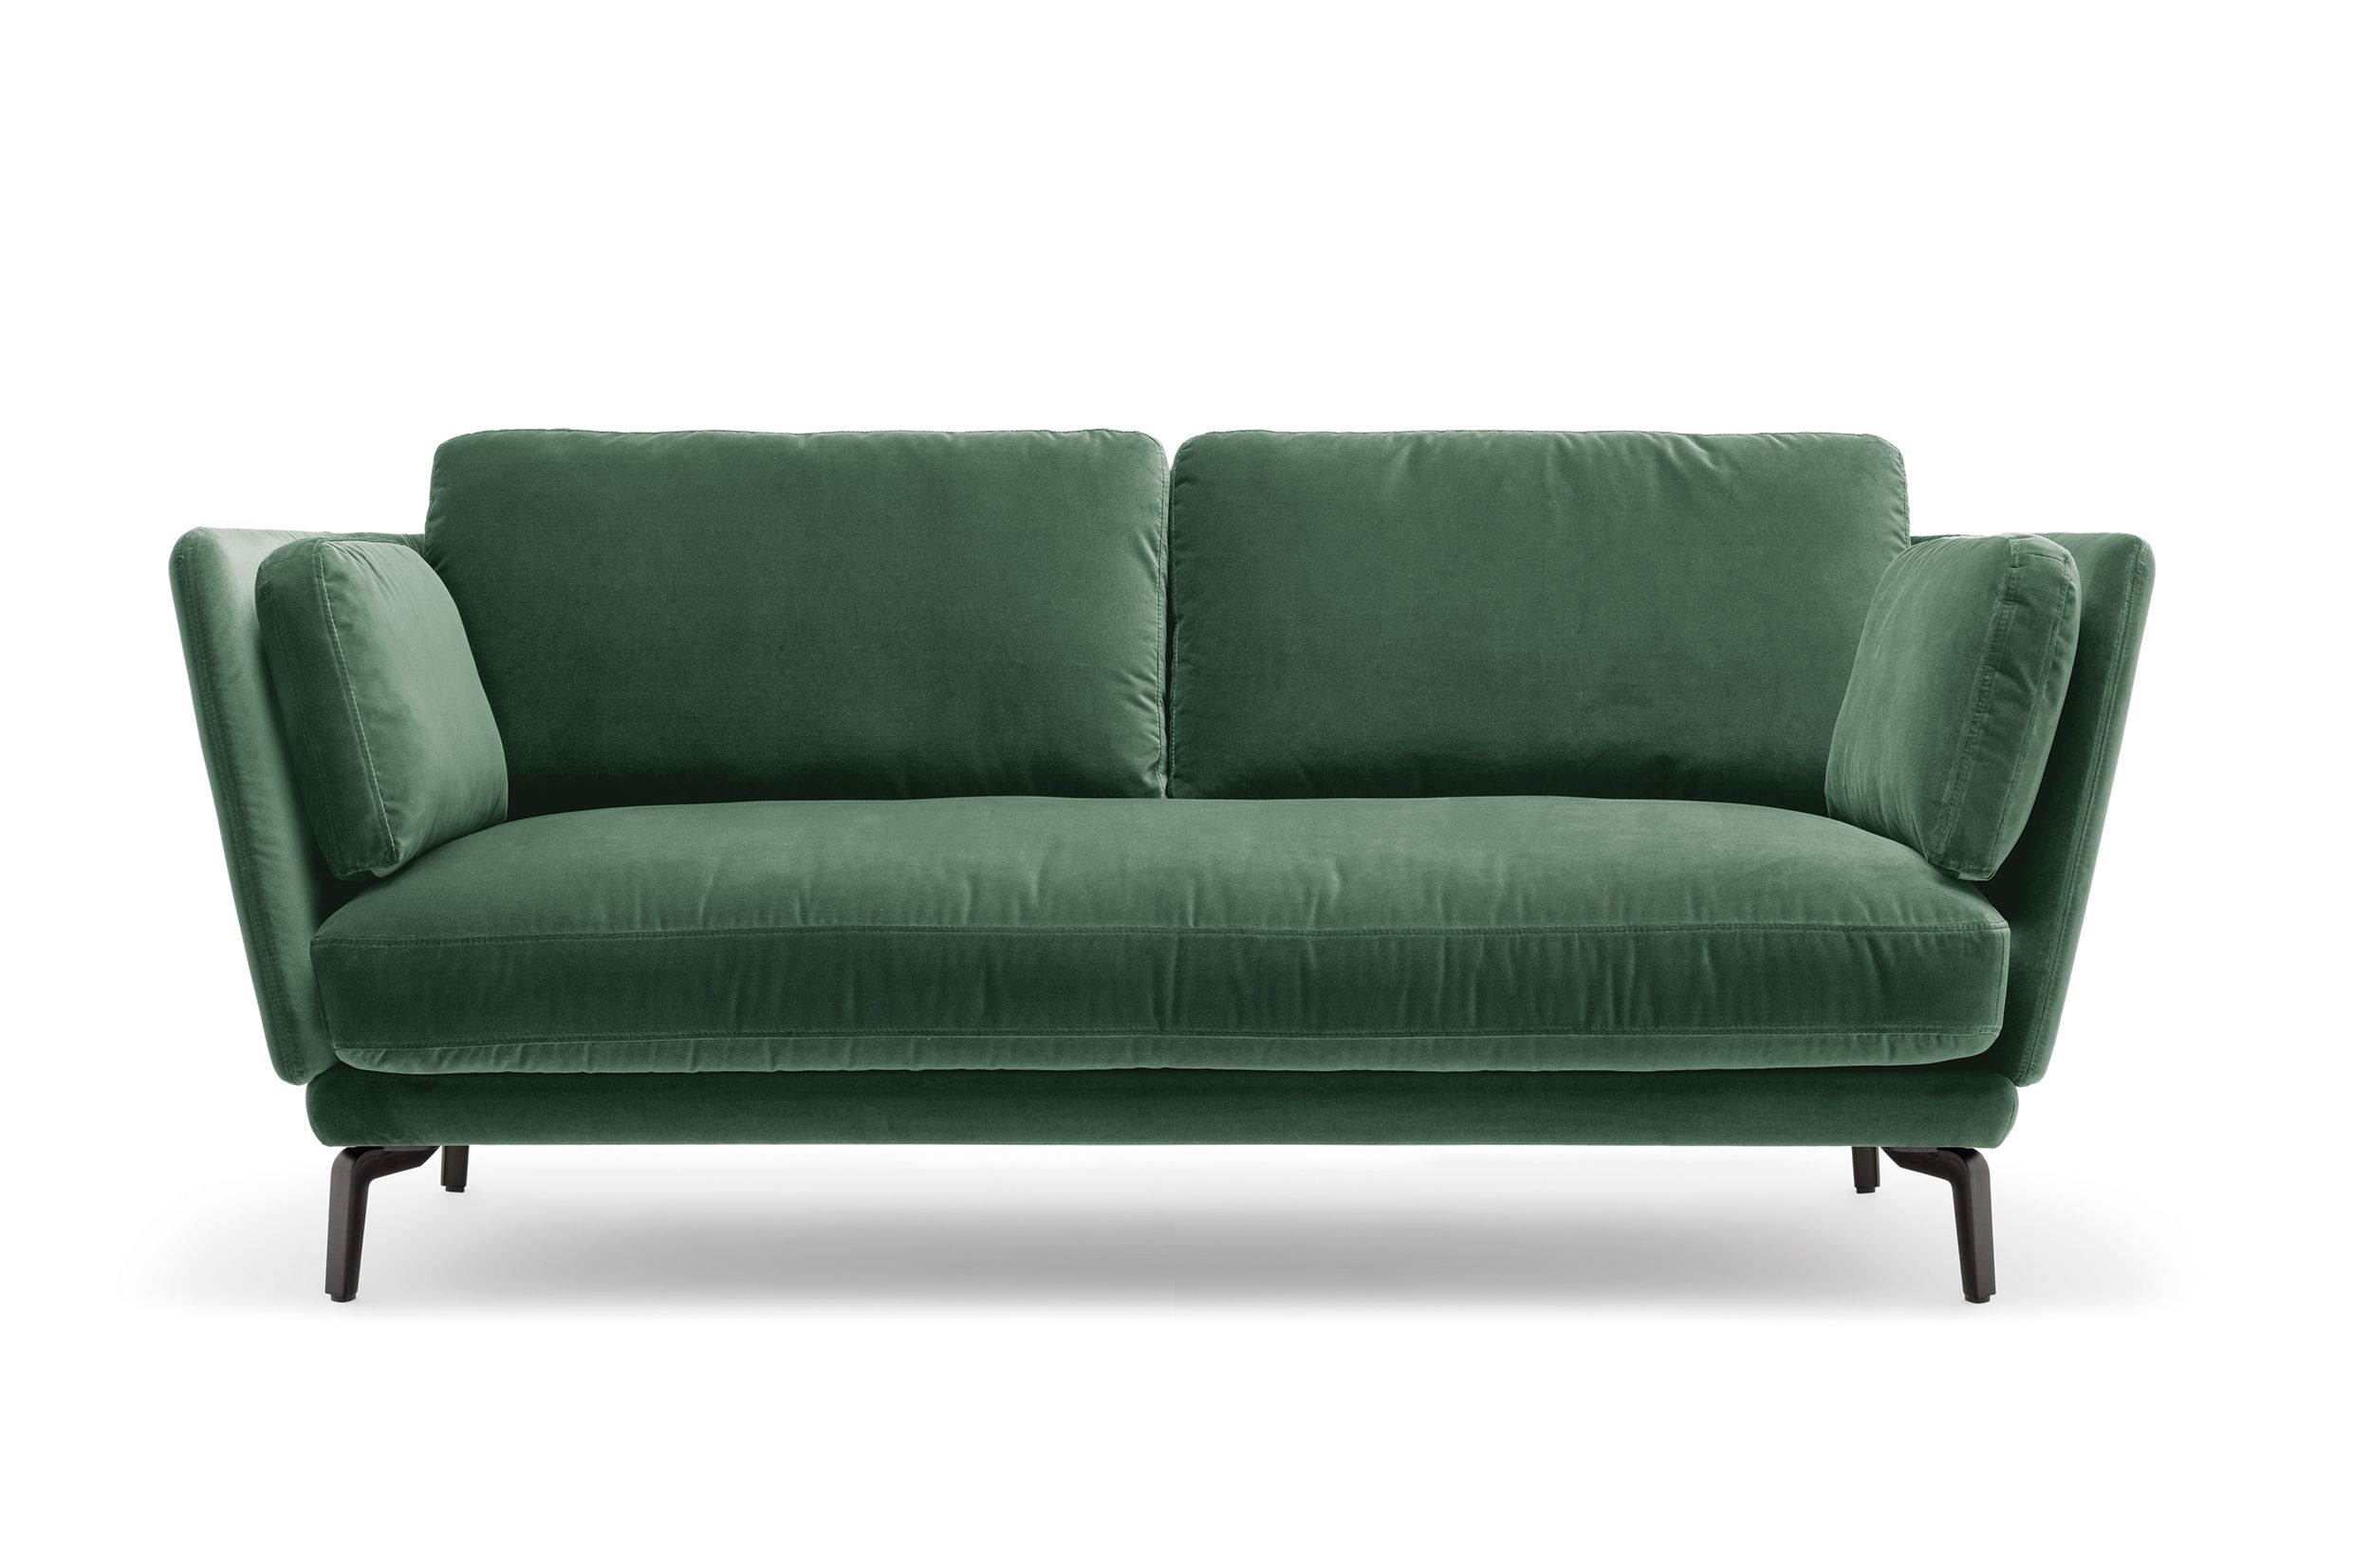 A striking beauty new Rolf Benz RONDO sofa in velvet Get yours